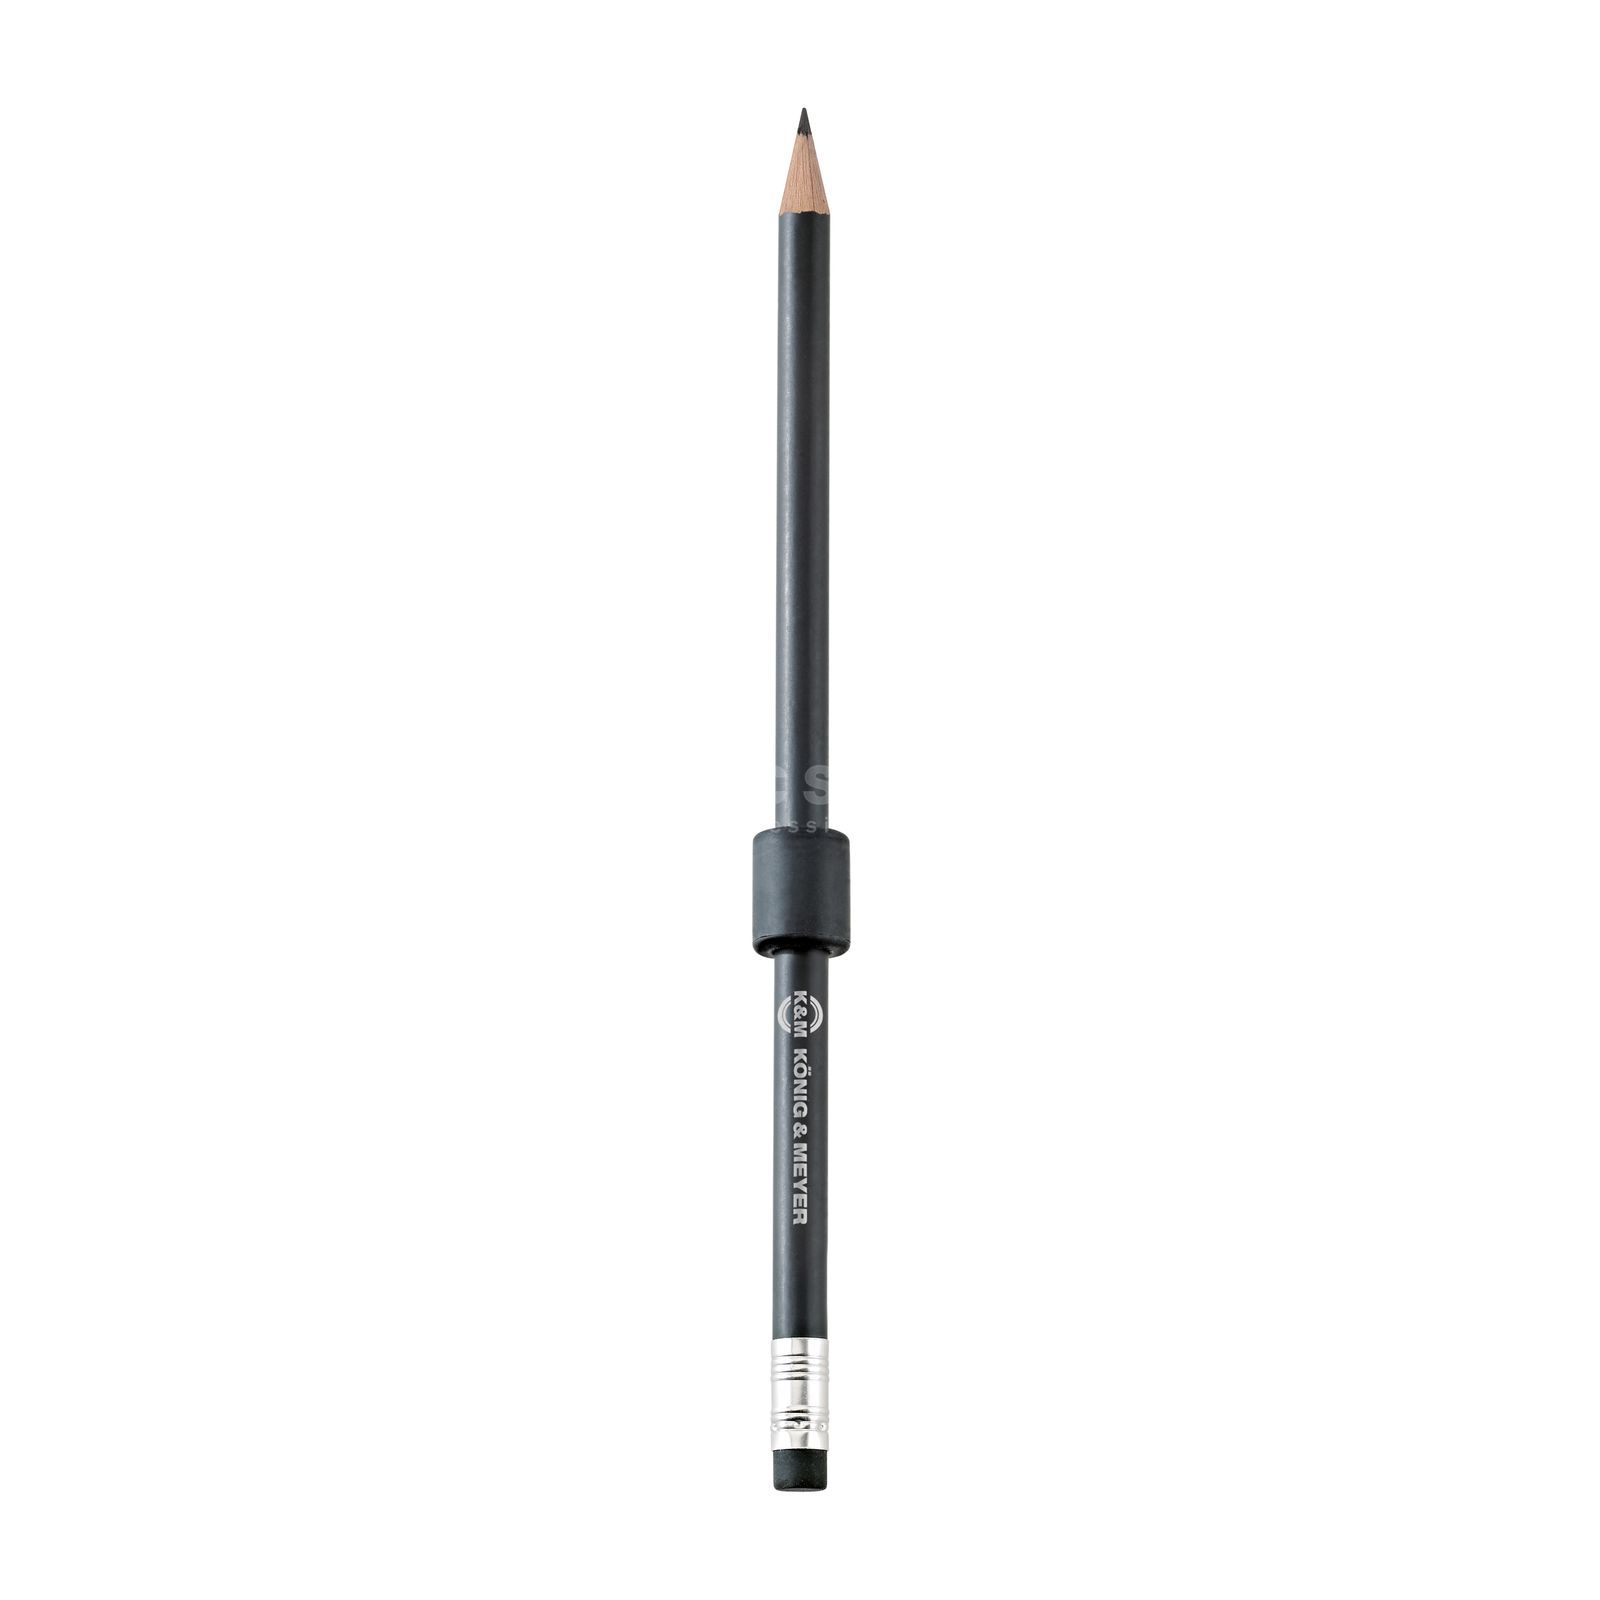 König & Meyer 16099 Holding magnet with pencil - black Productafbeelding